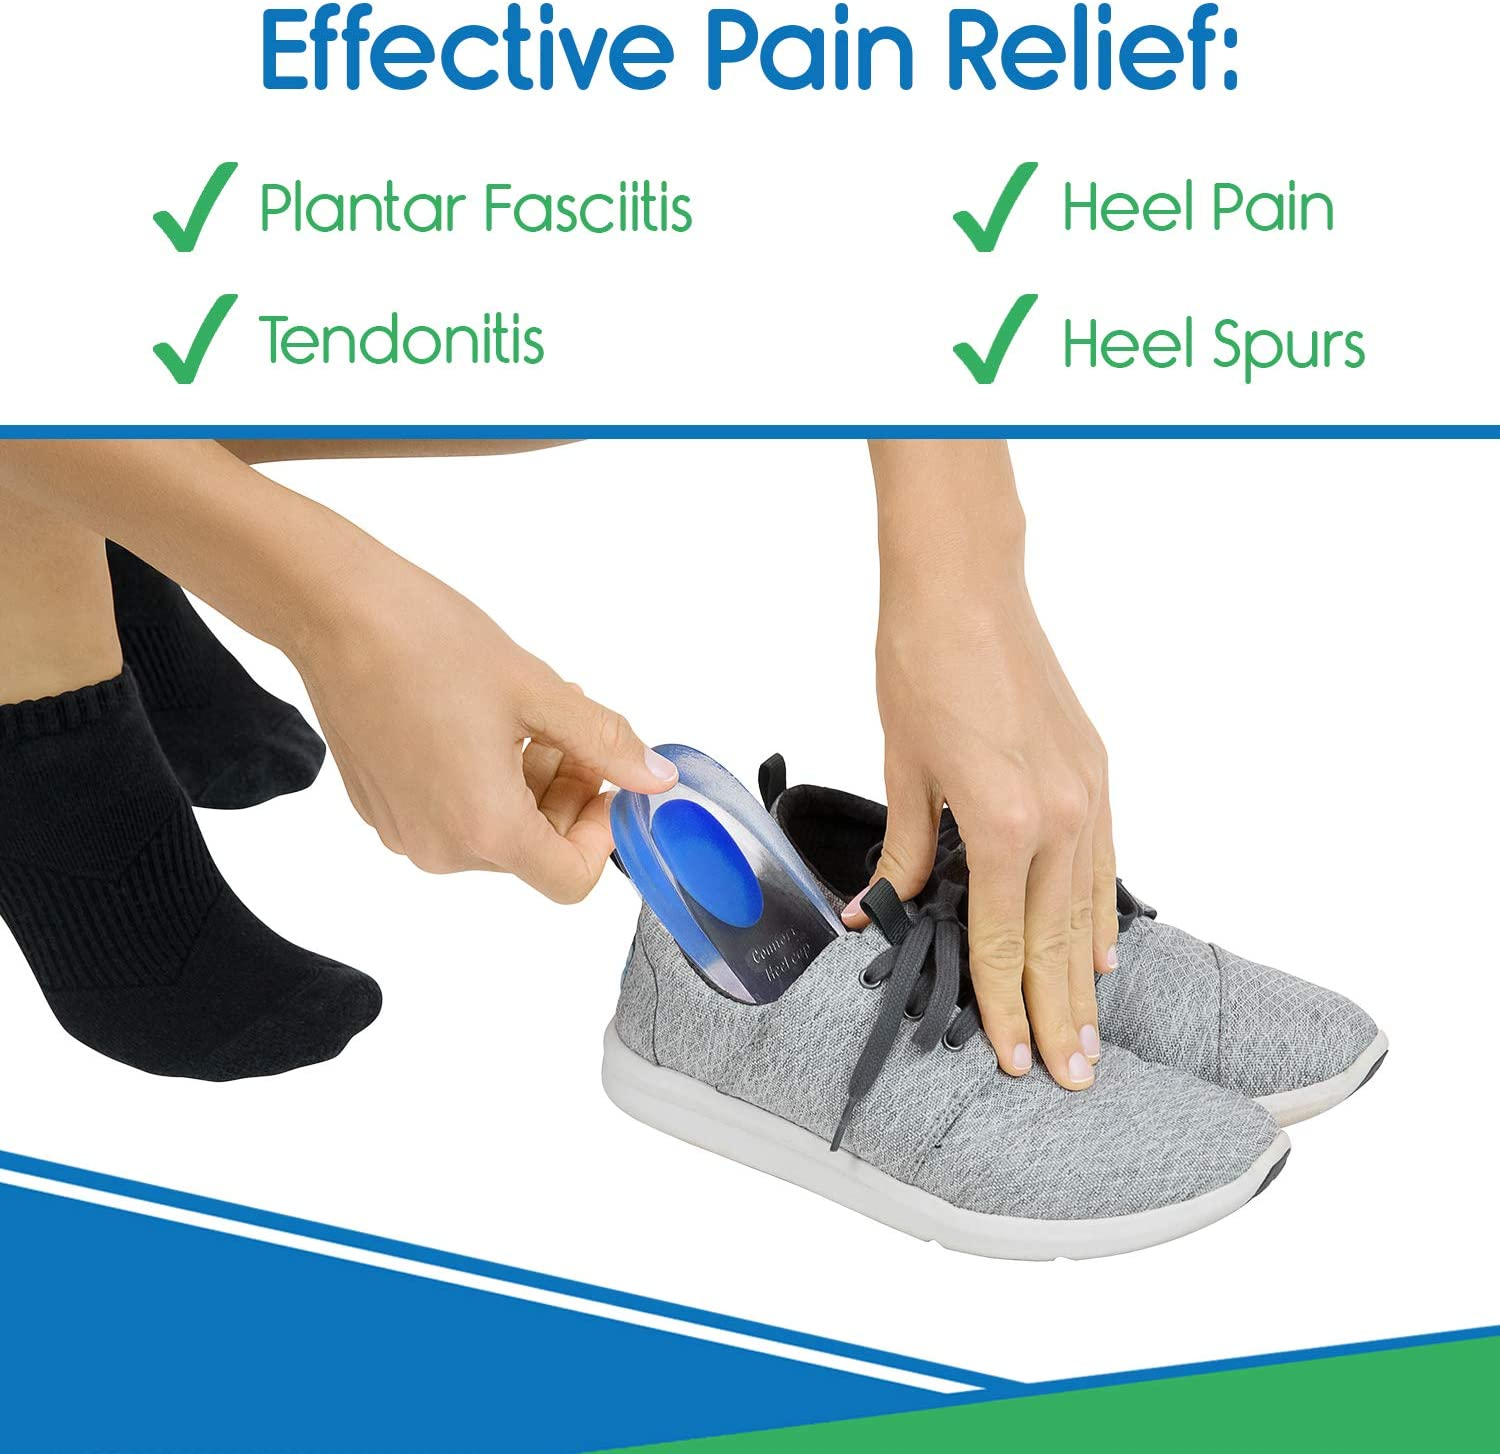 ViveSole Silicone Gel Heel Cups - Shoe Inserts for Plantar Fasciitis, Sore Heel, Bone Spur & Achilles Pain Relief Protectors - Foot Comfort Pads - Support (1 Pair, US Men's (6-9.5)): Health & Personal Care